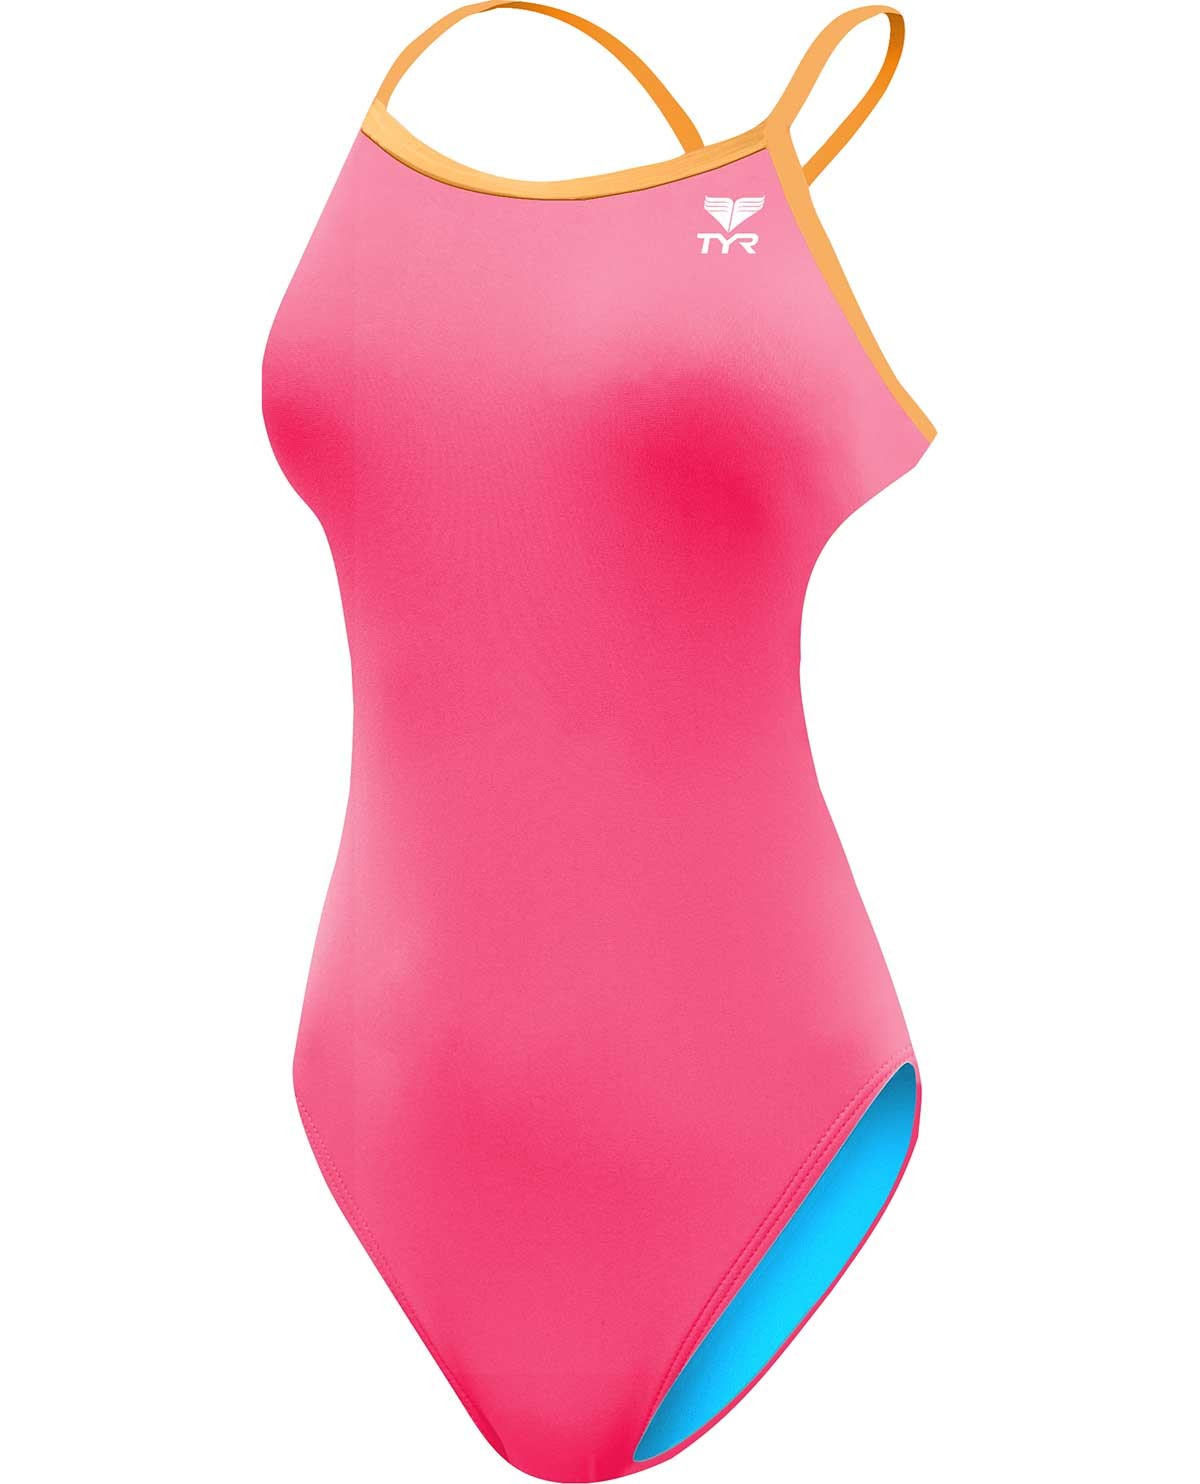 6132e9e62883b ... Holiday Gifts for Women - TYR Women s Solid Trinityfit Swimsuit ...